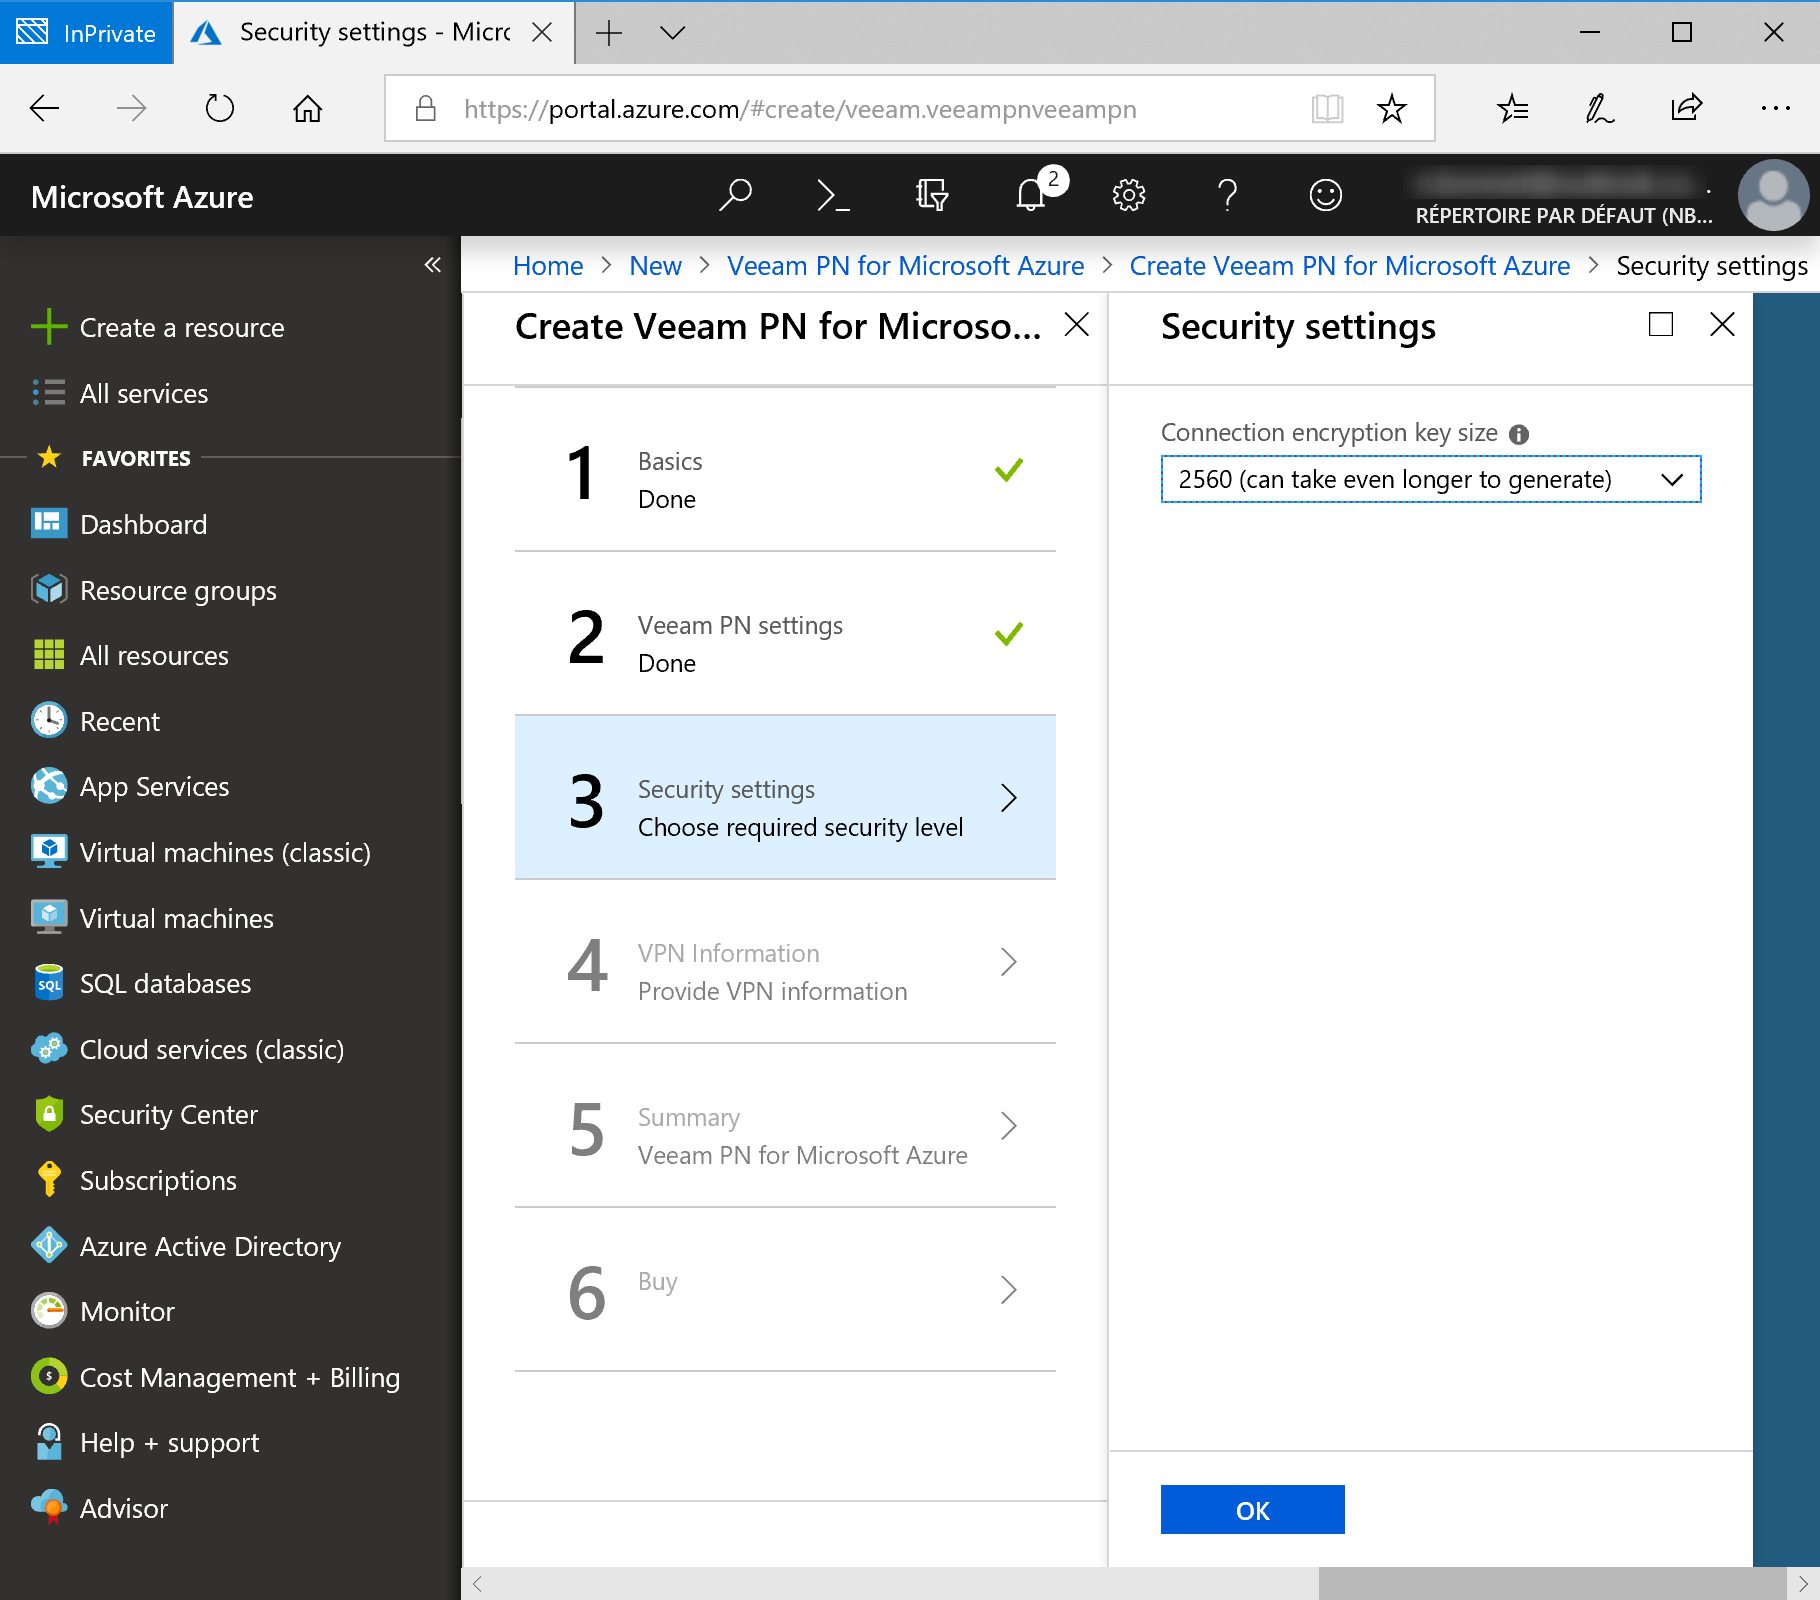 Configure Security Settings for Veeam PN